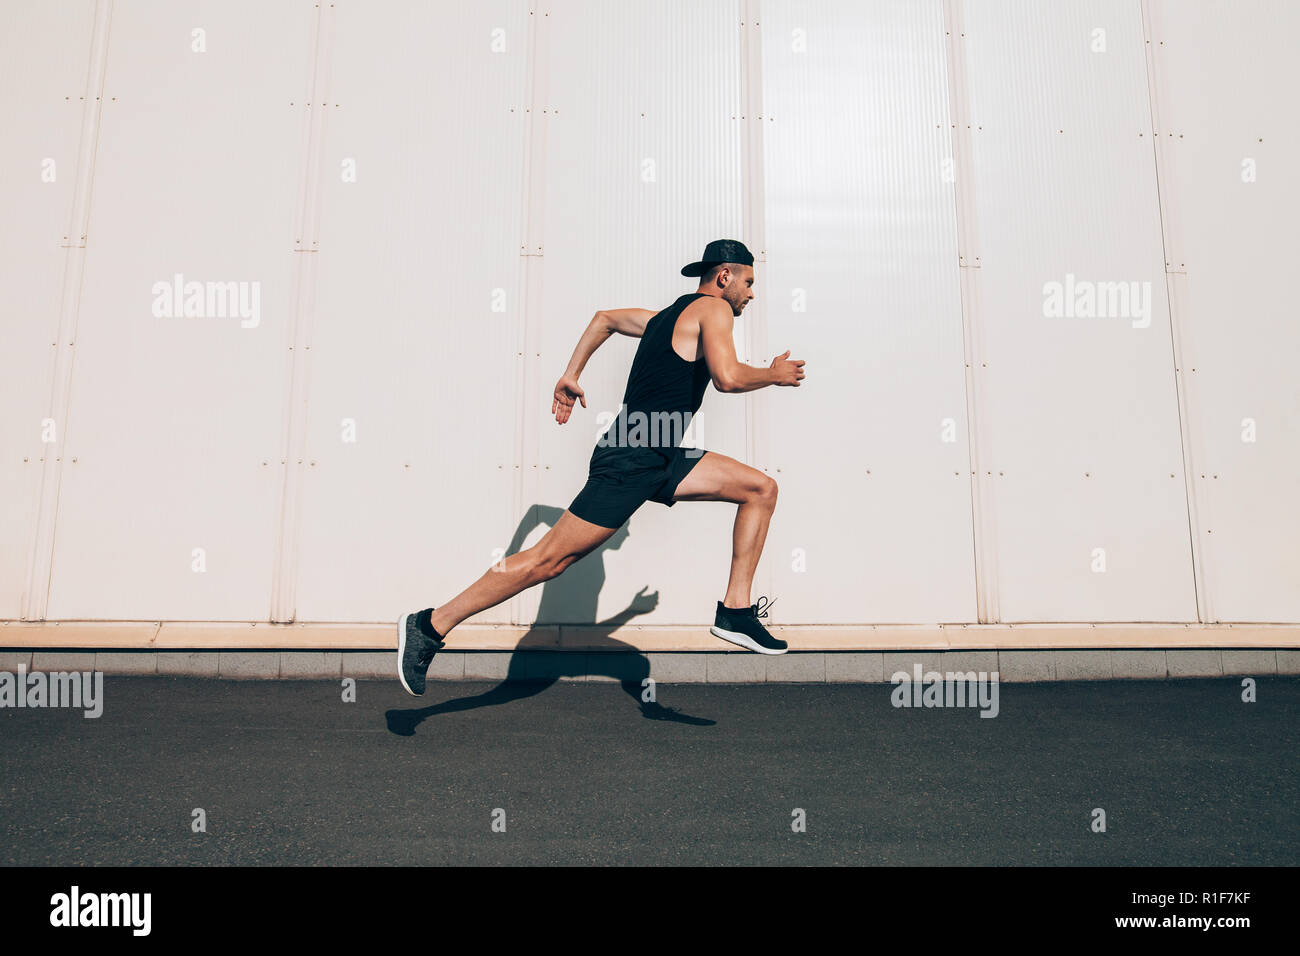 Runner man running fast in industrial city background. Sport, athletics, fitness, jogging activity - Stock Image